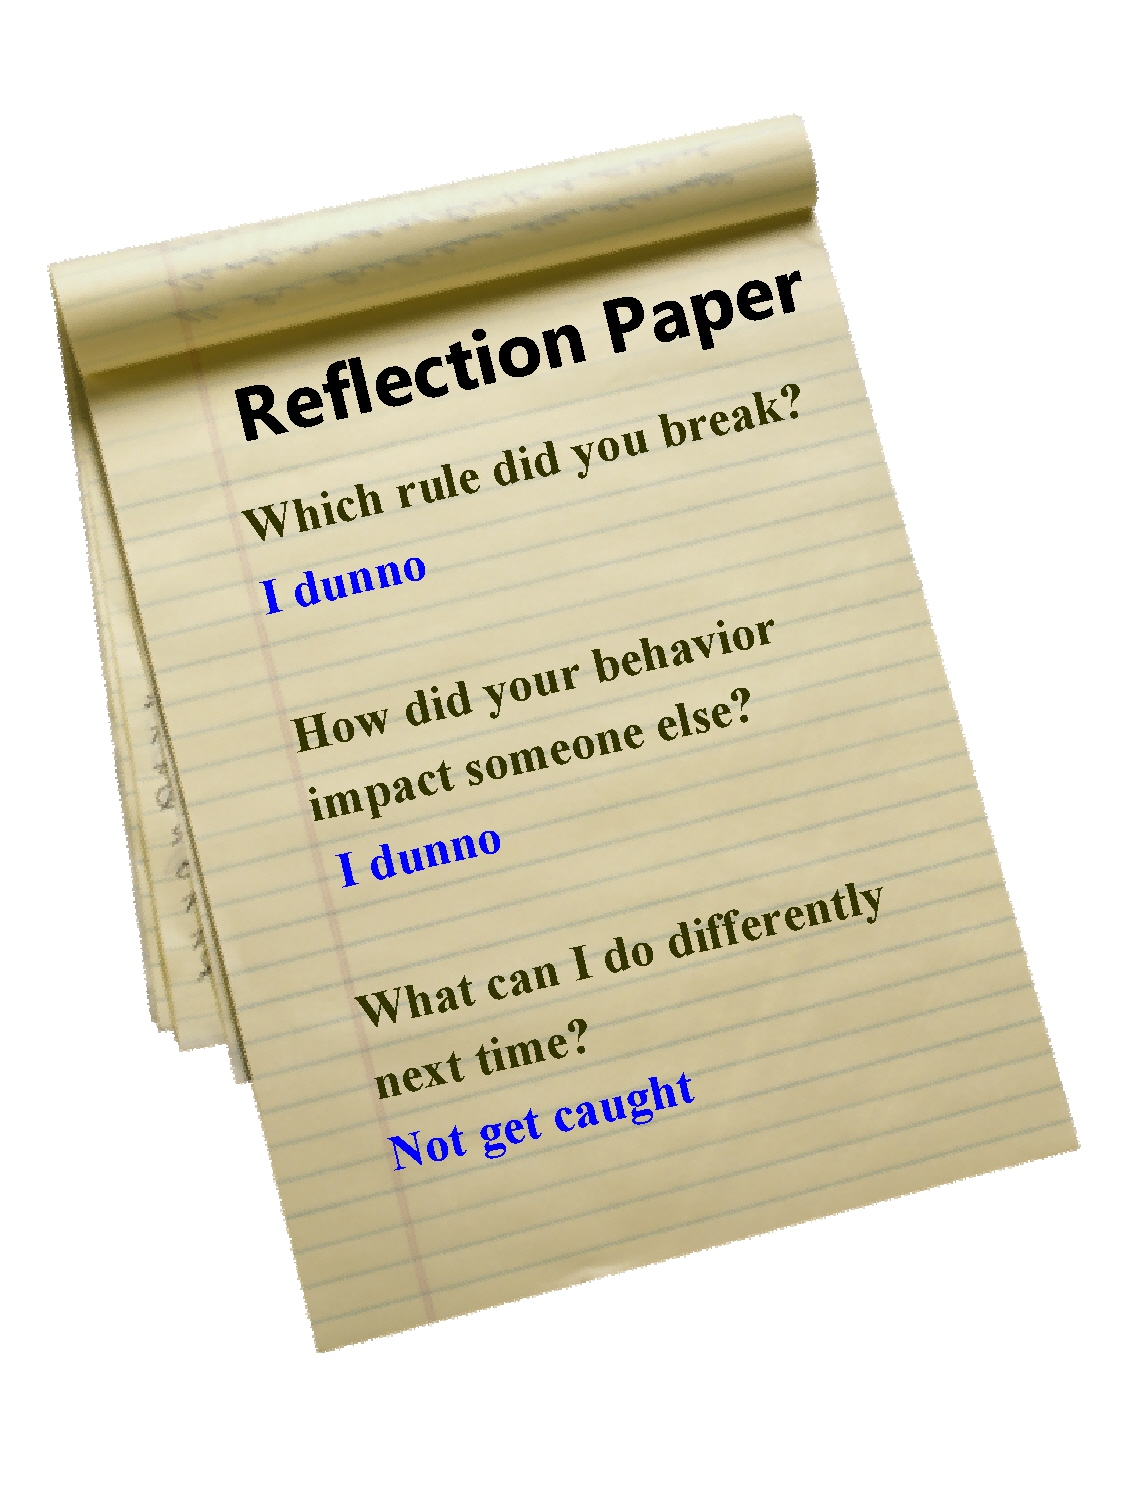 What is a self reflection paper